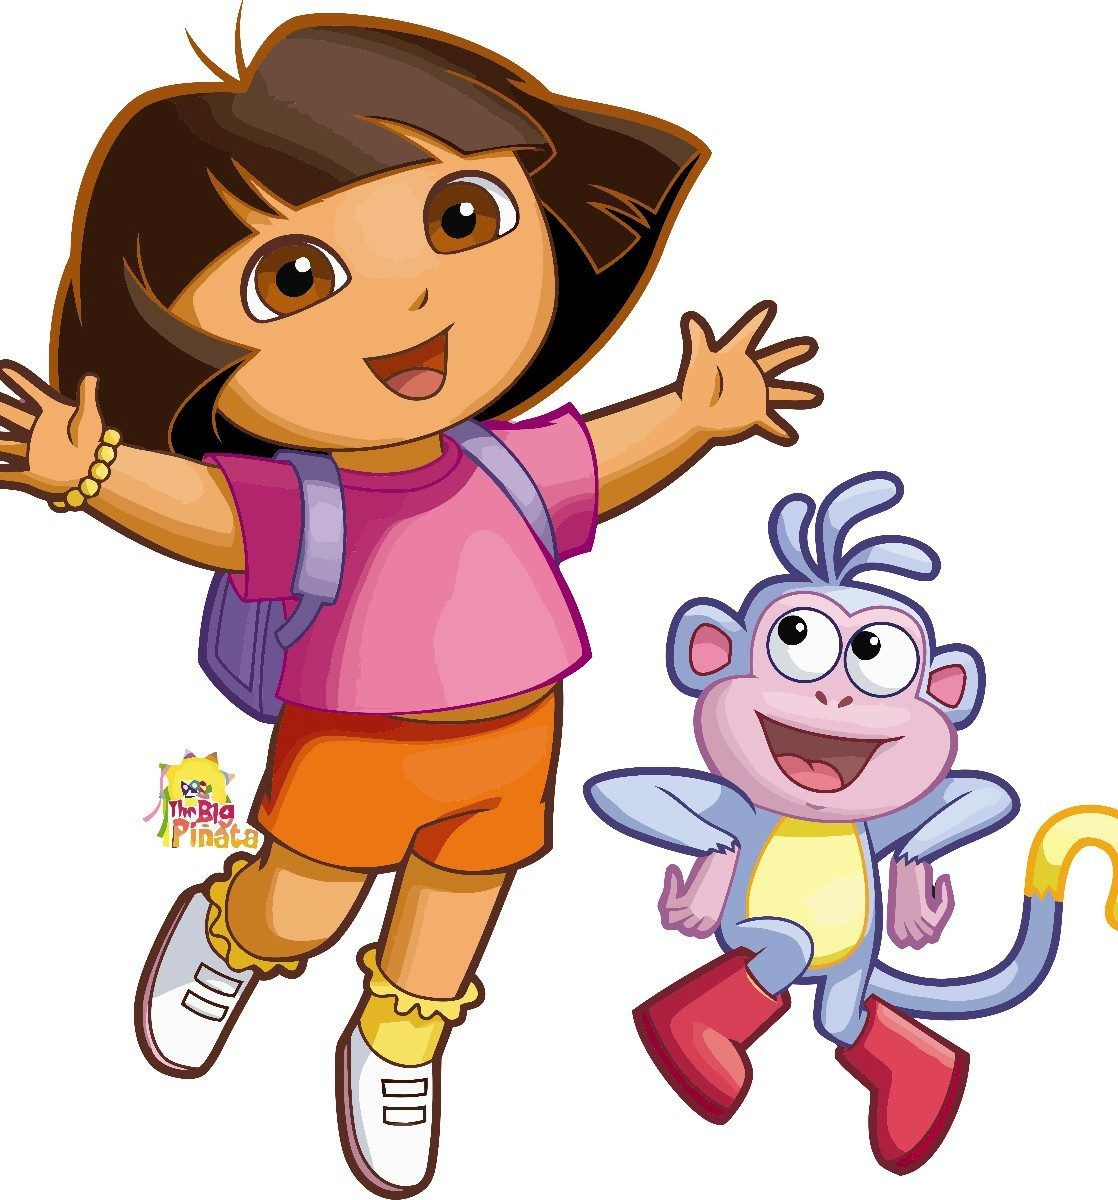 I used to watch Dora and it taught me some Spanish.